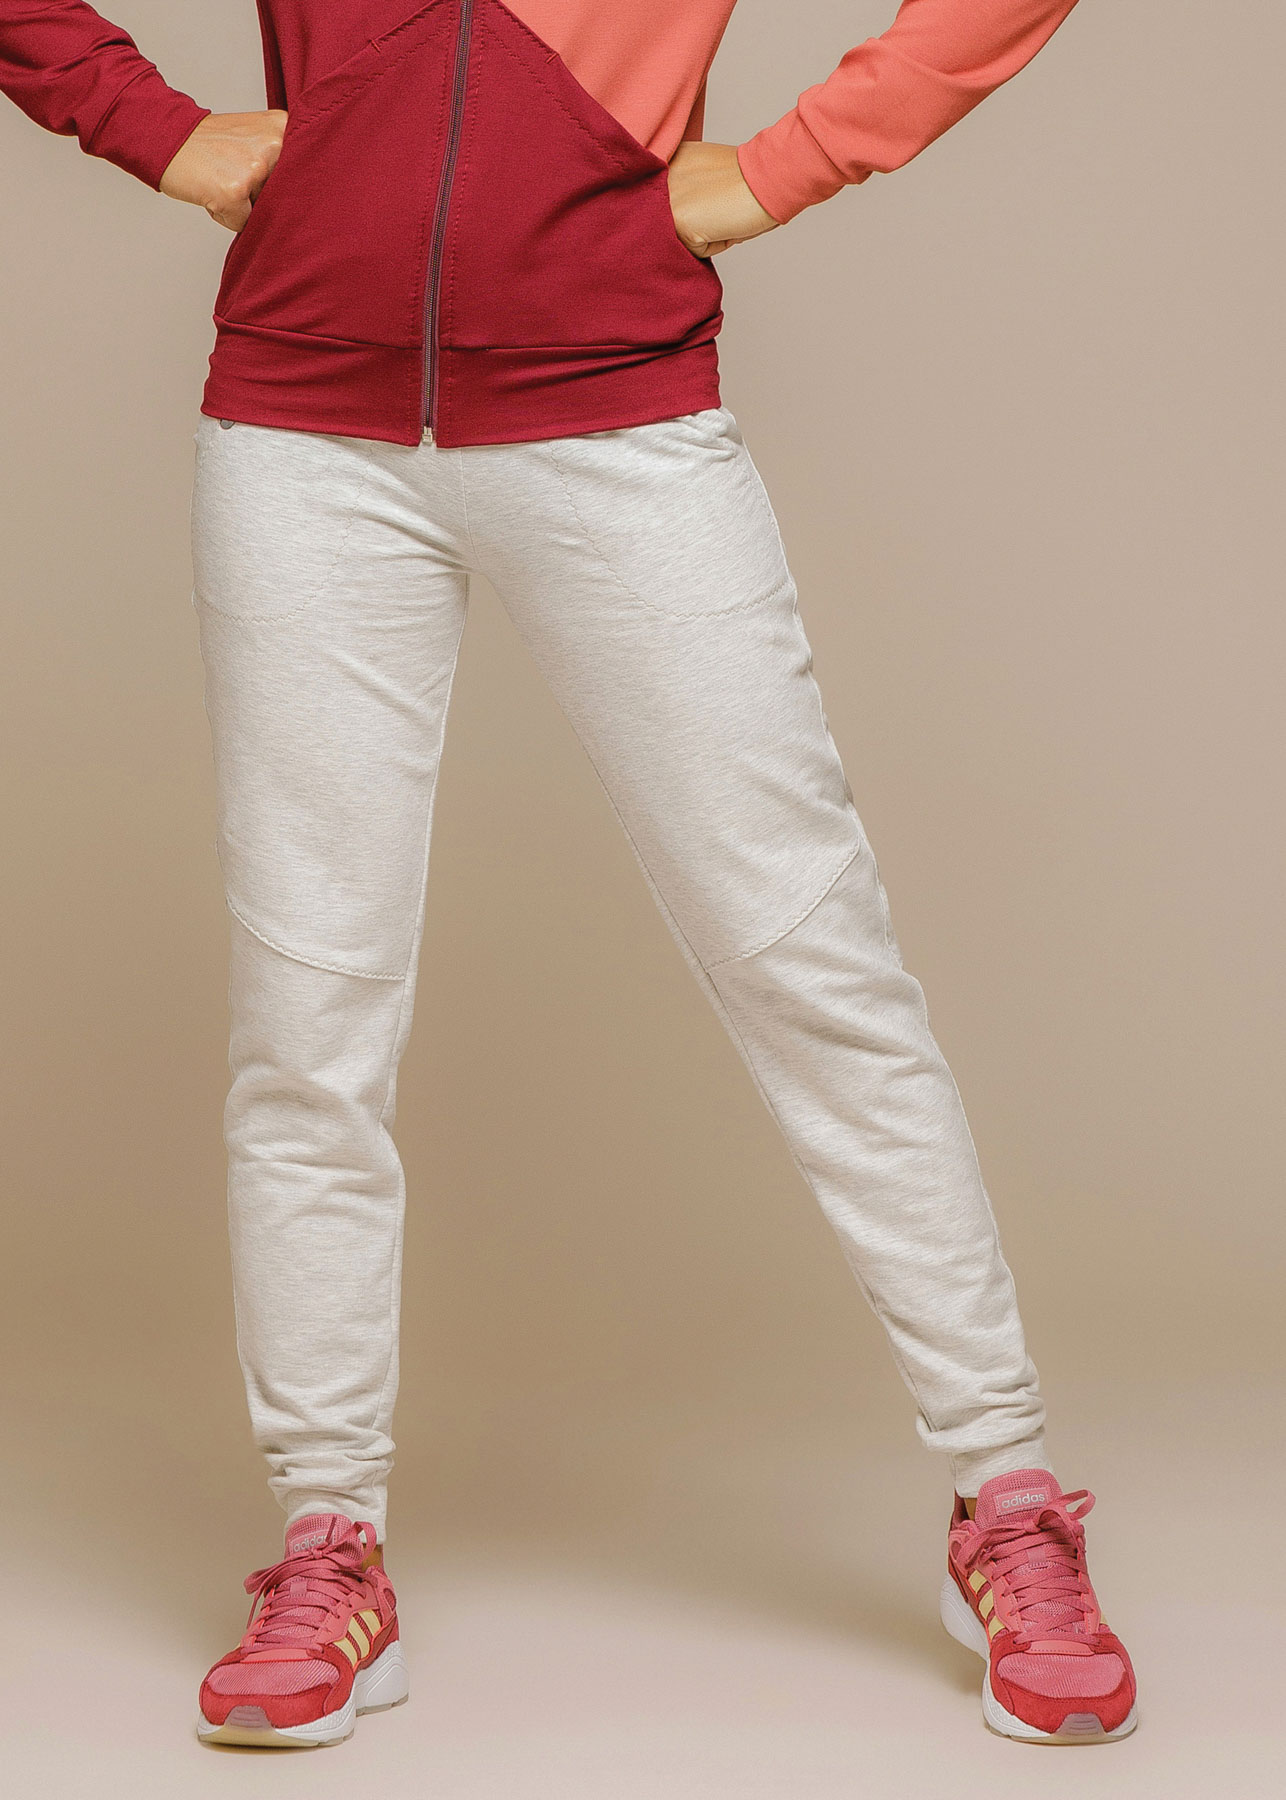 Calça Jogging Sport Fleece